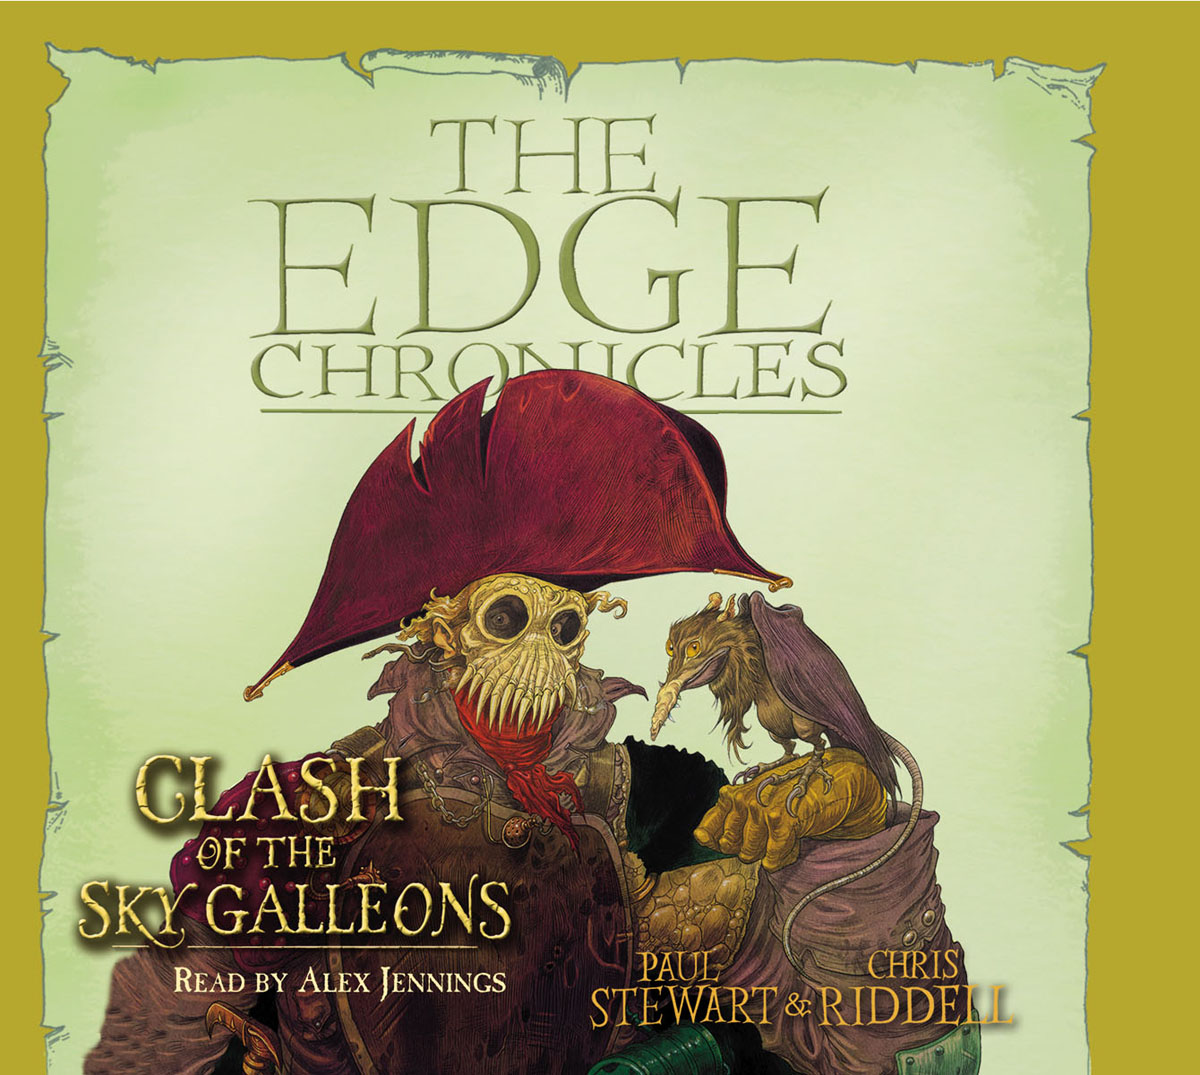 The Edge Chronicles 3: Clash of the Sky Galleons the sky is falling – understanding